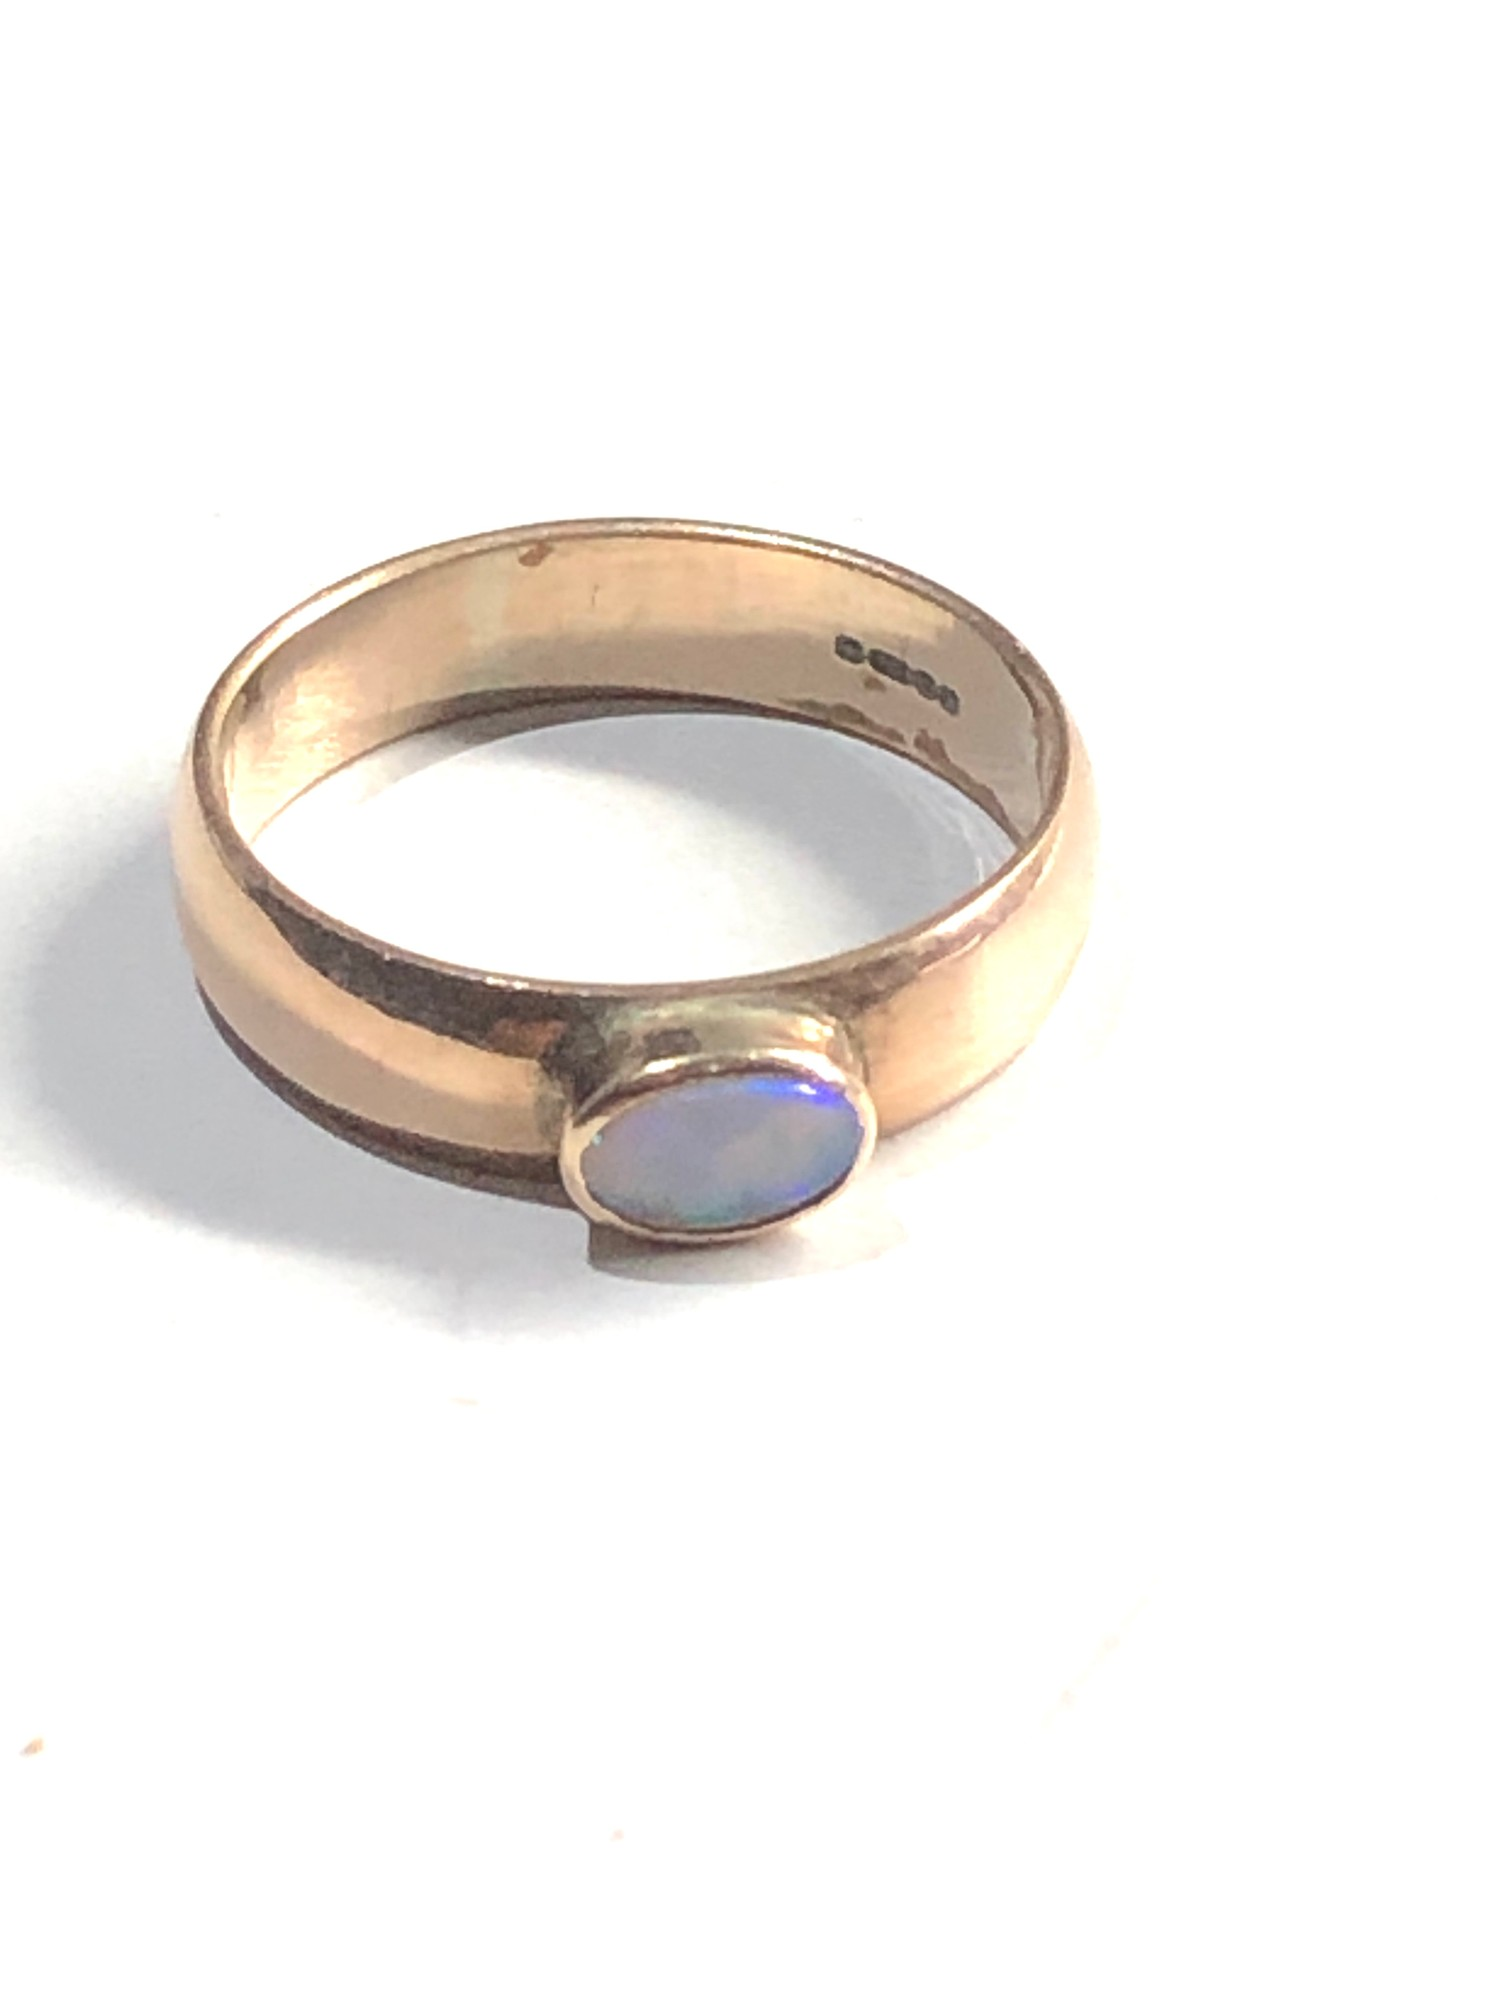 9ct Gold opal solitaire chunky band ring 2.9g